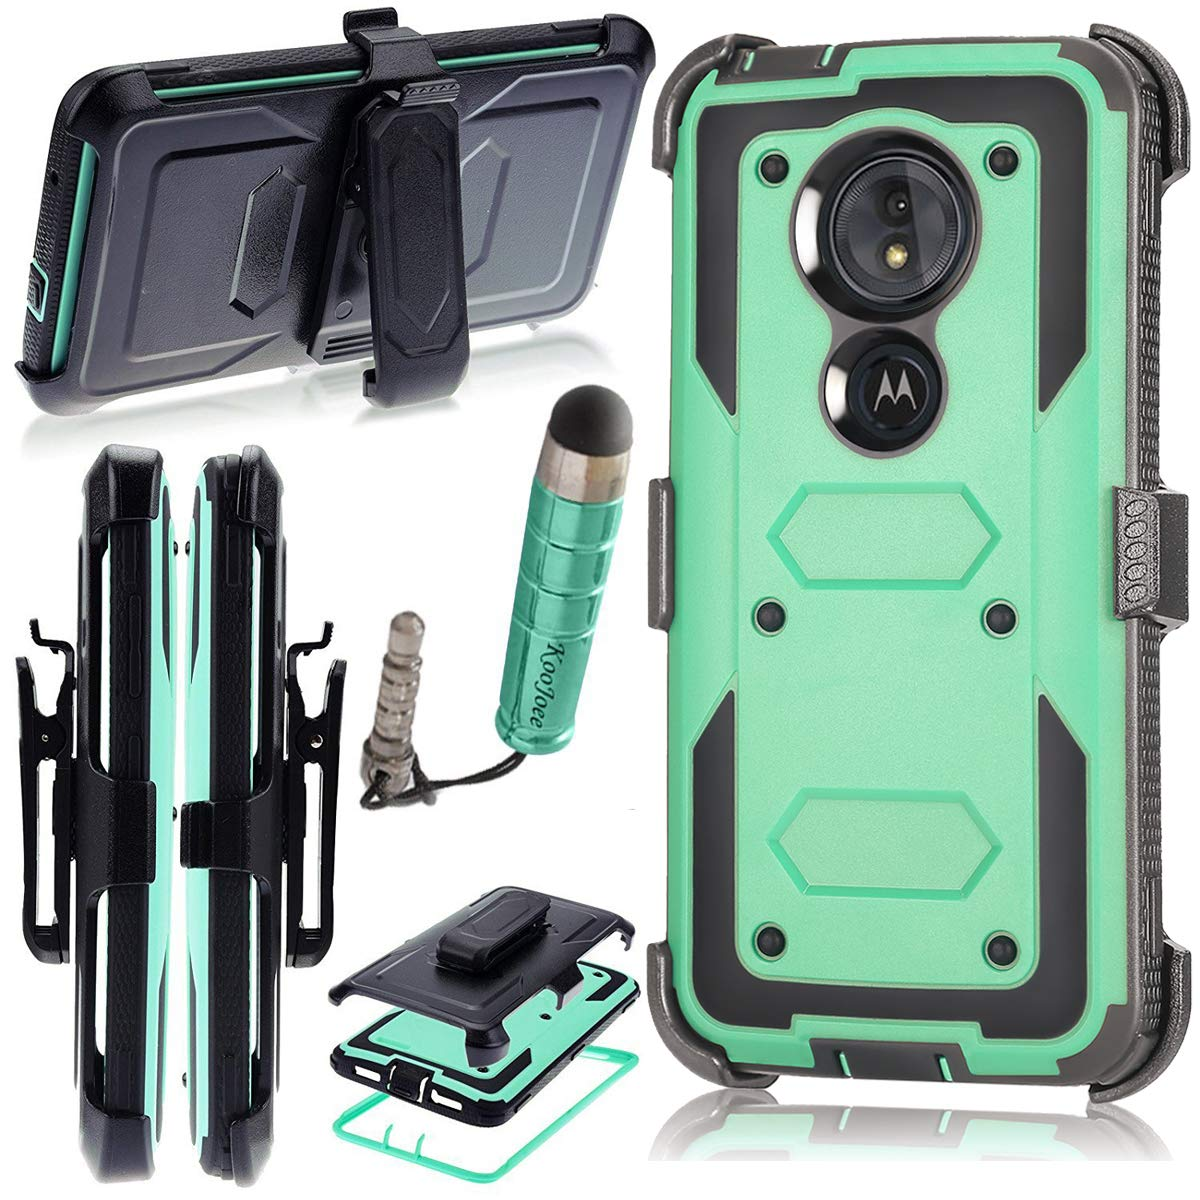 KooJoee Armor Rugged Moto G6 Play Case, Shockproof Heavy Duty [Kickstand] [Belt Swivel Clip] Full-Body Protection Holster Carrying Case for Motorola Moto G6 Play (Blue)